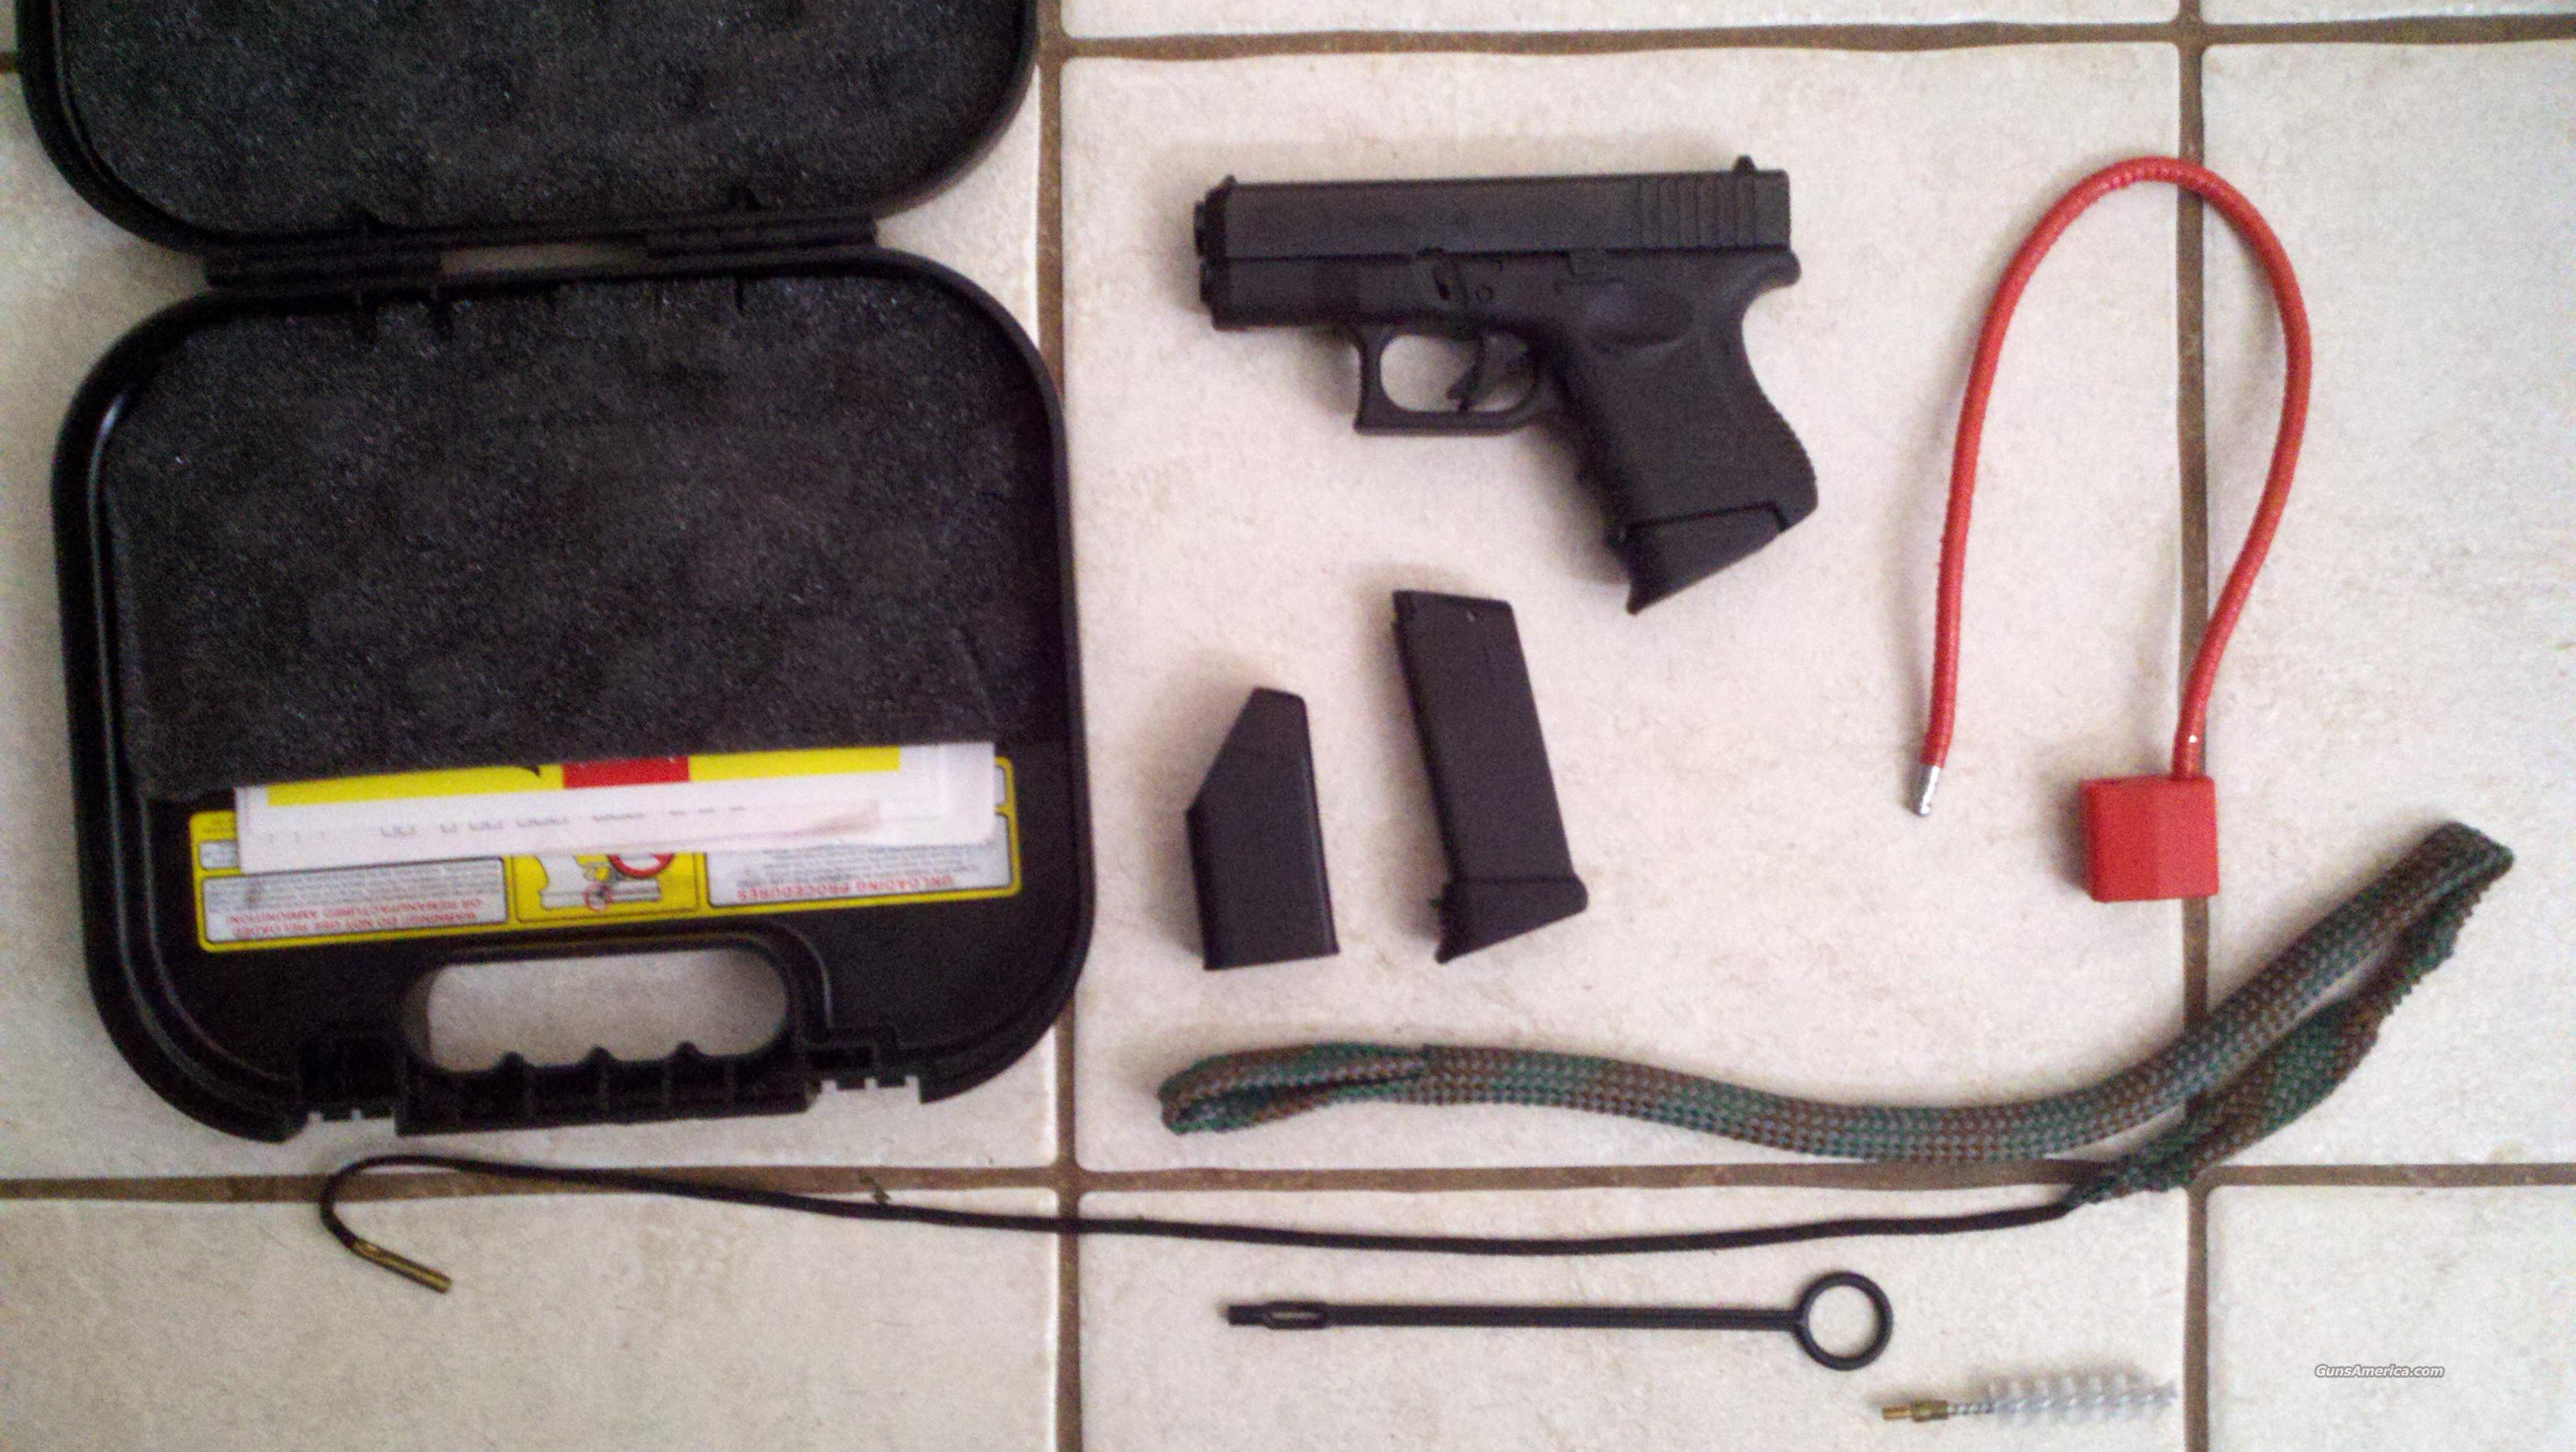 Glock 27 w/2 mags and mag grip extensions  Guns > Pistols > Glock Pistols > 26/27